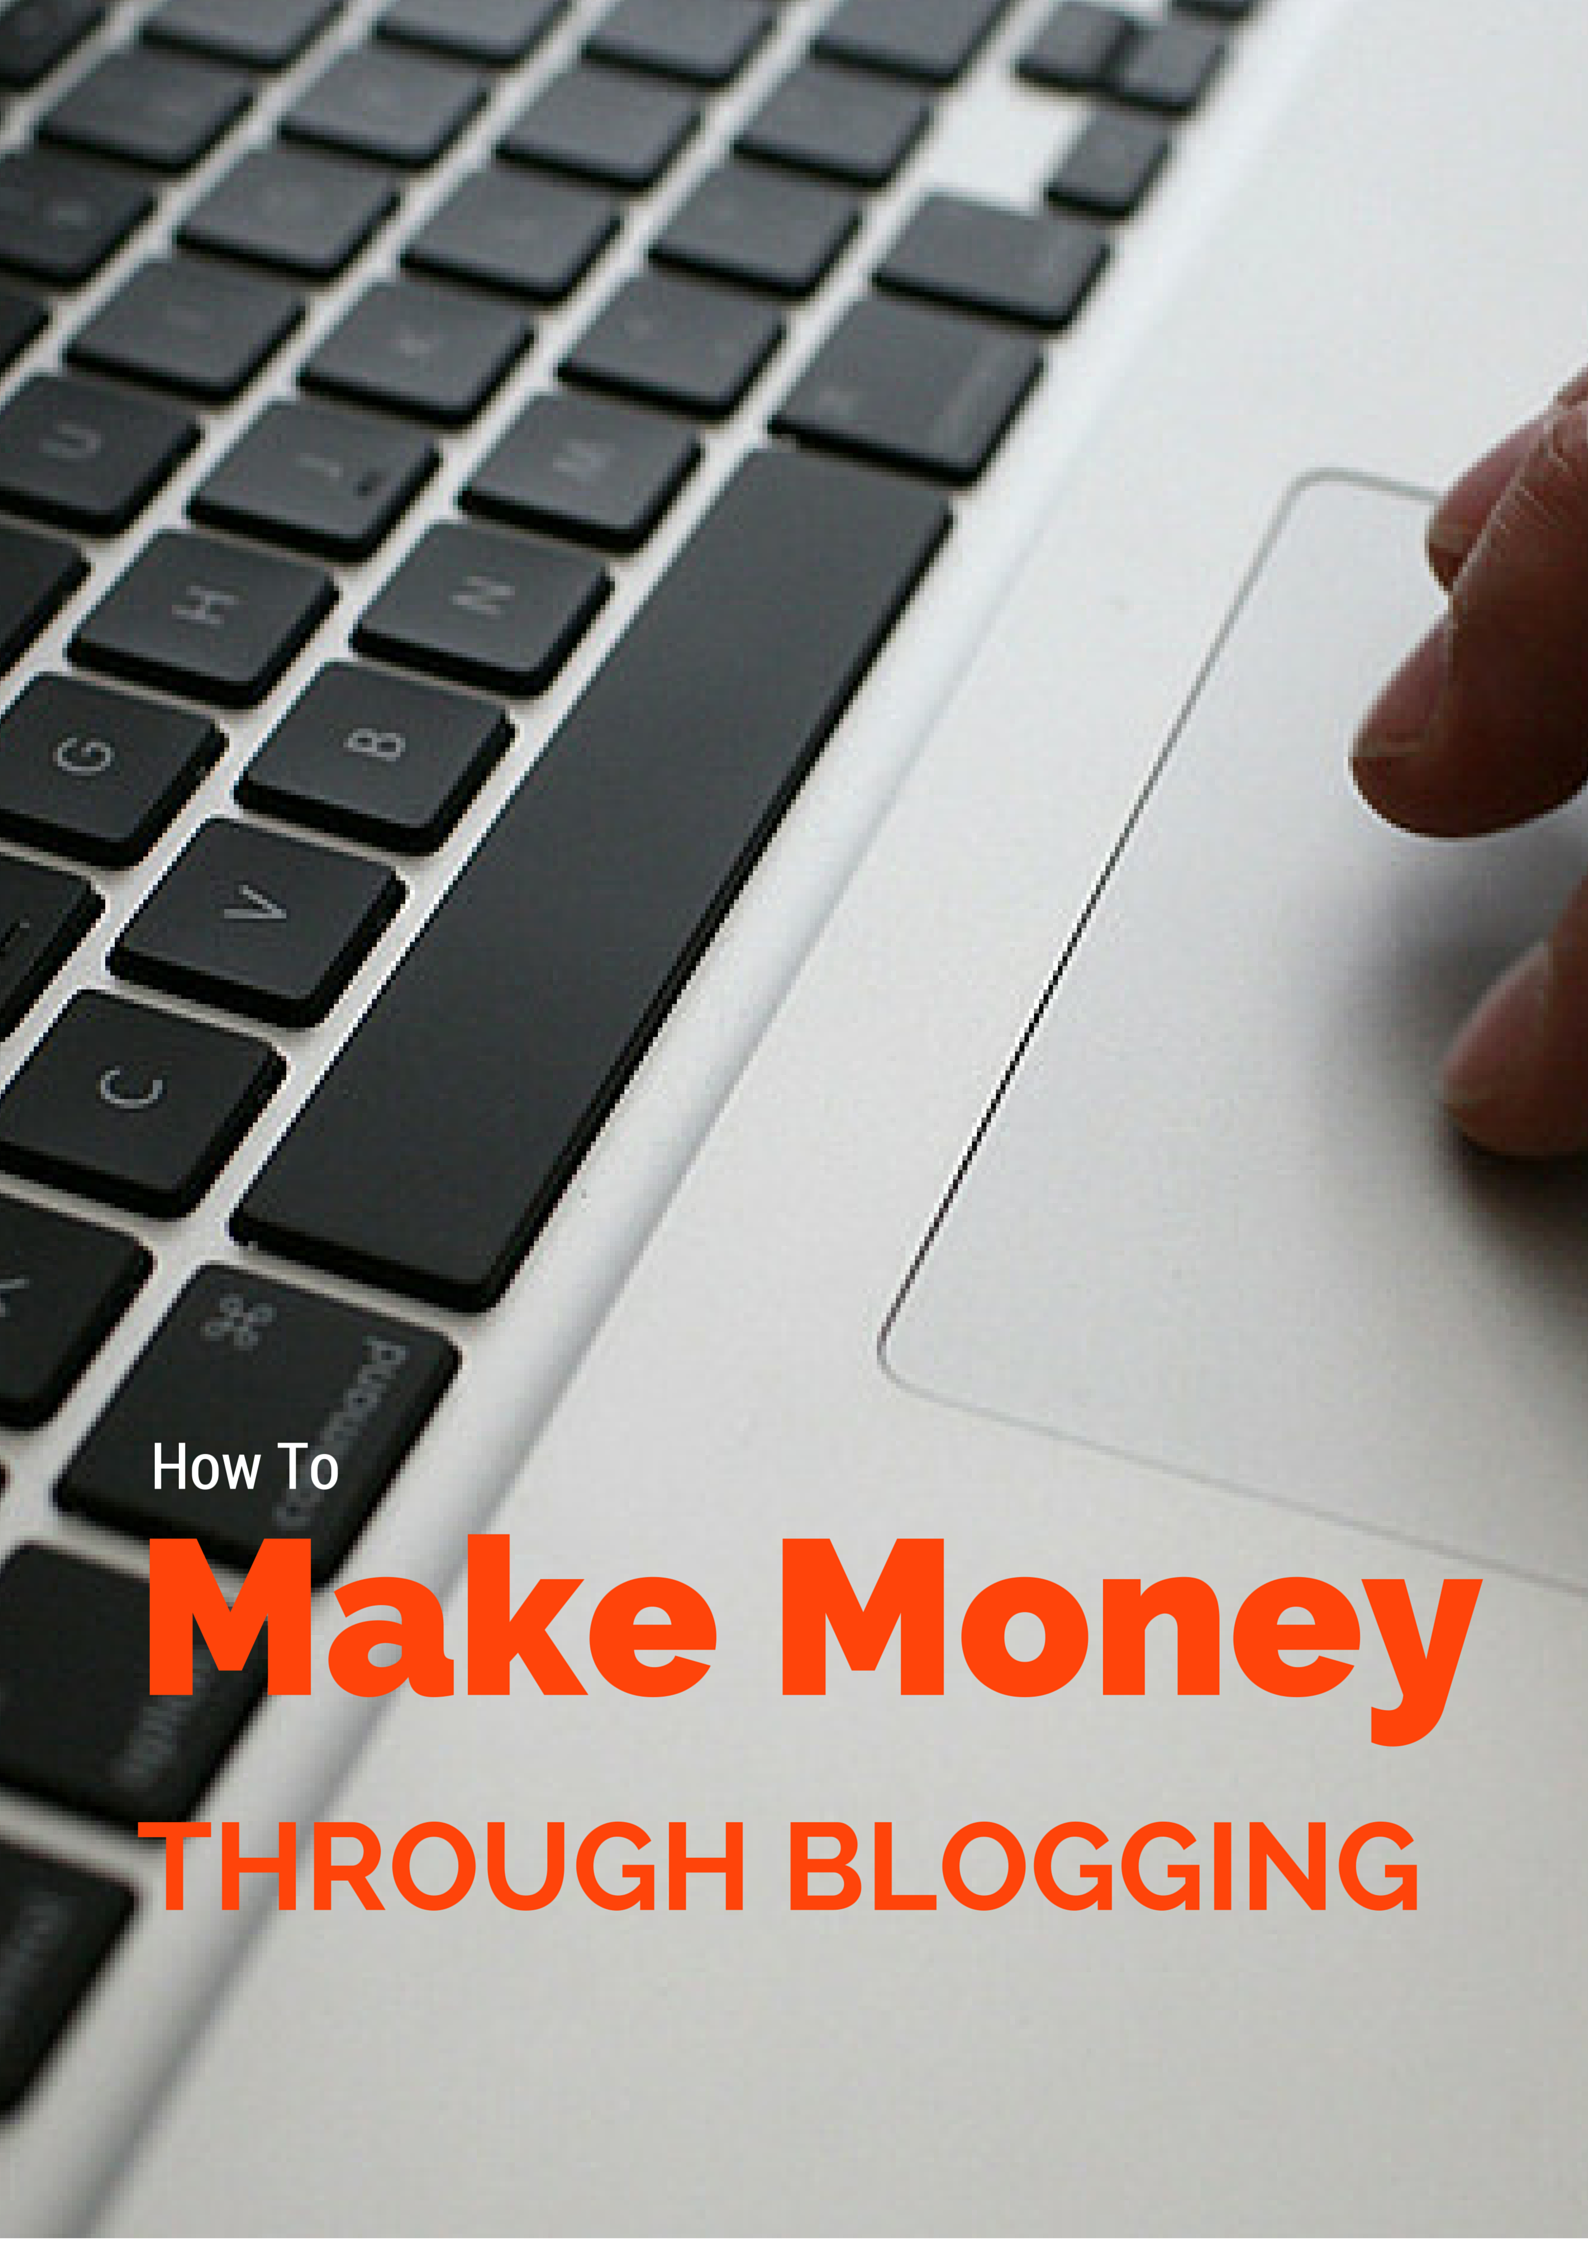 How To Make Money Through Blogging